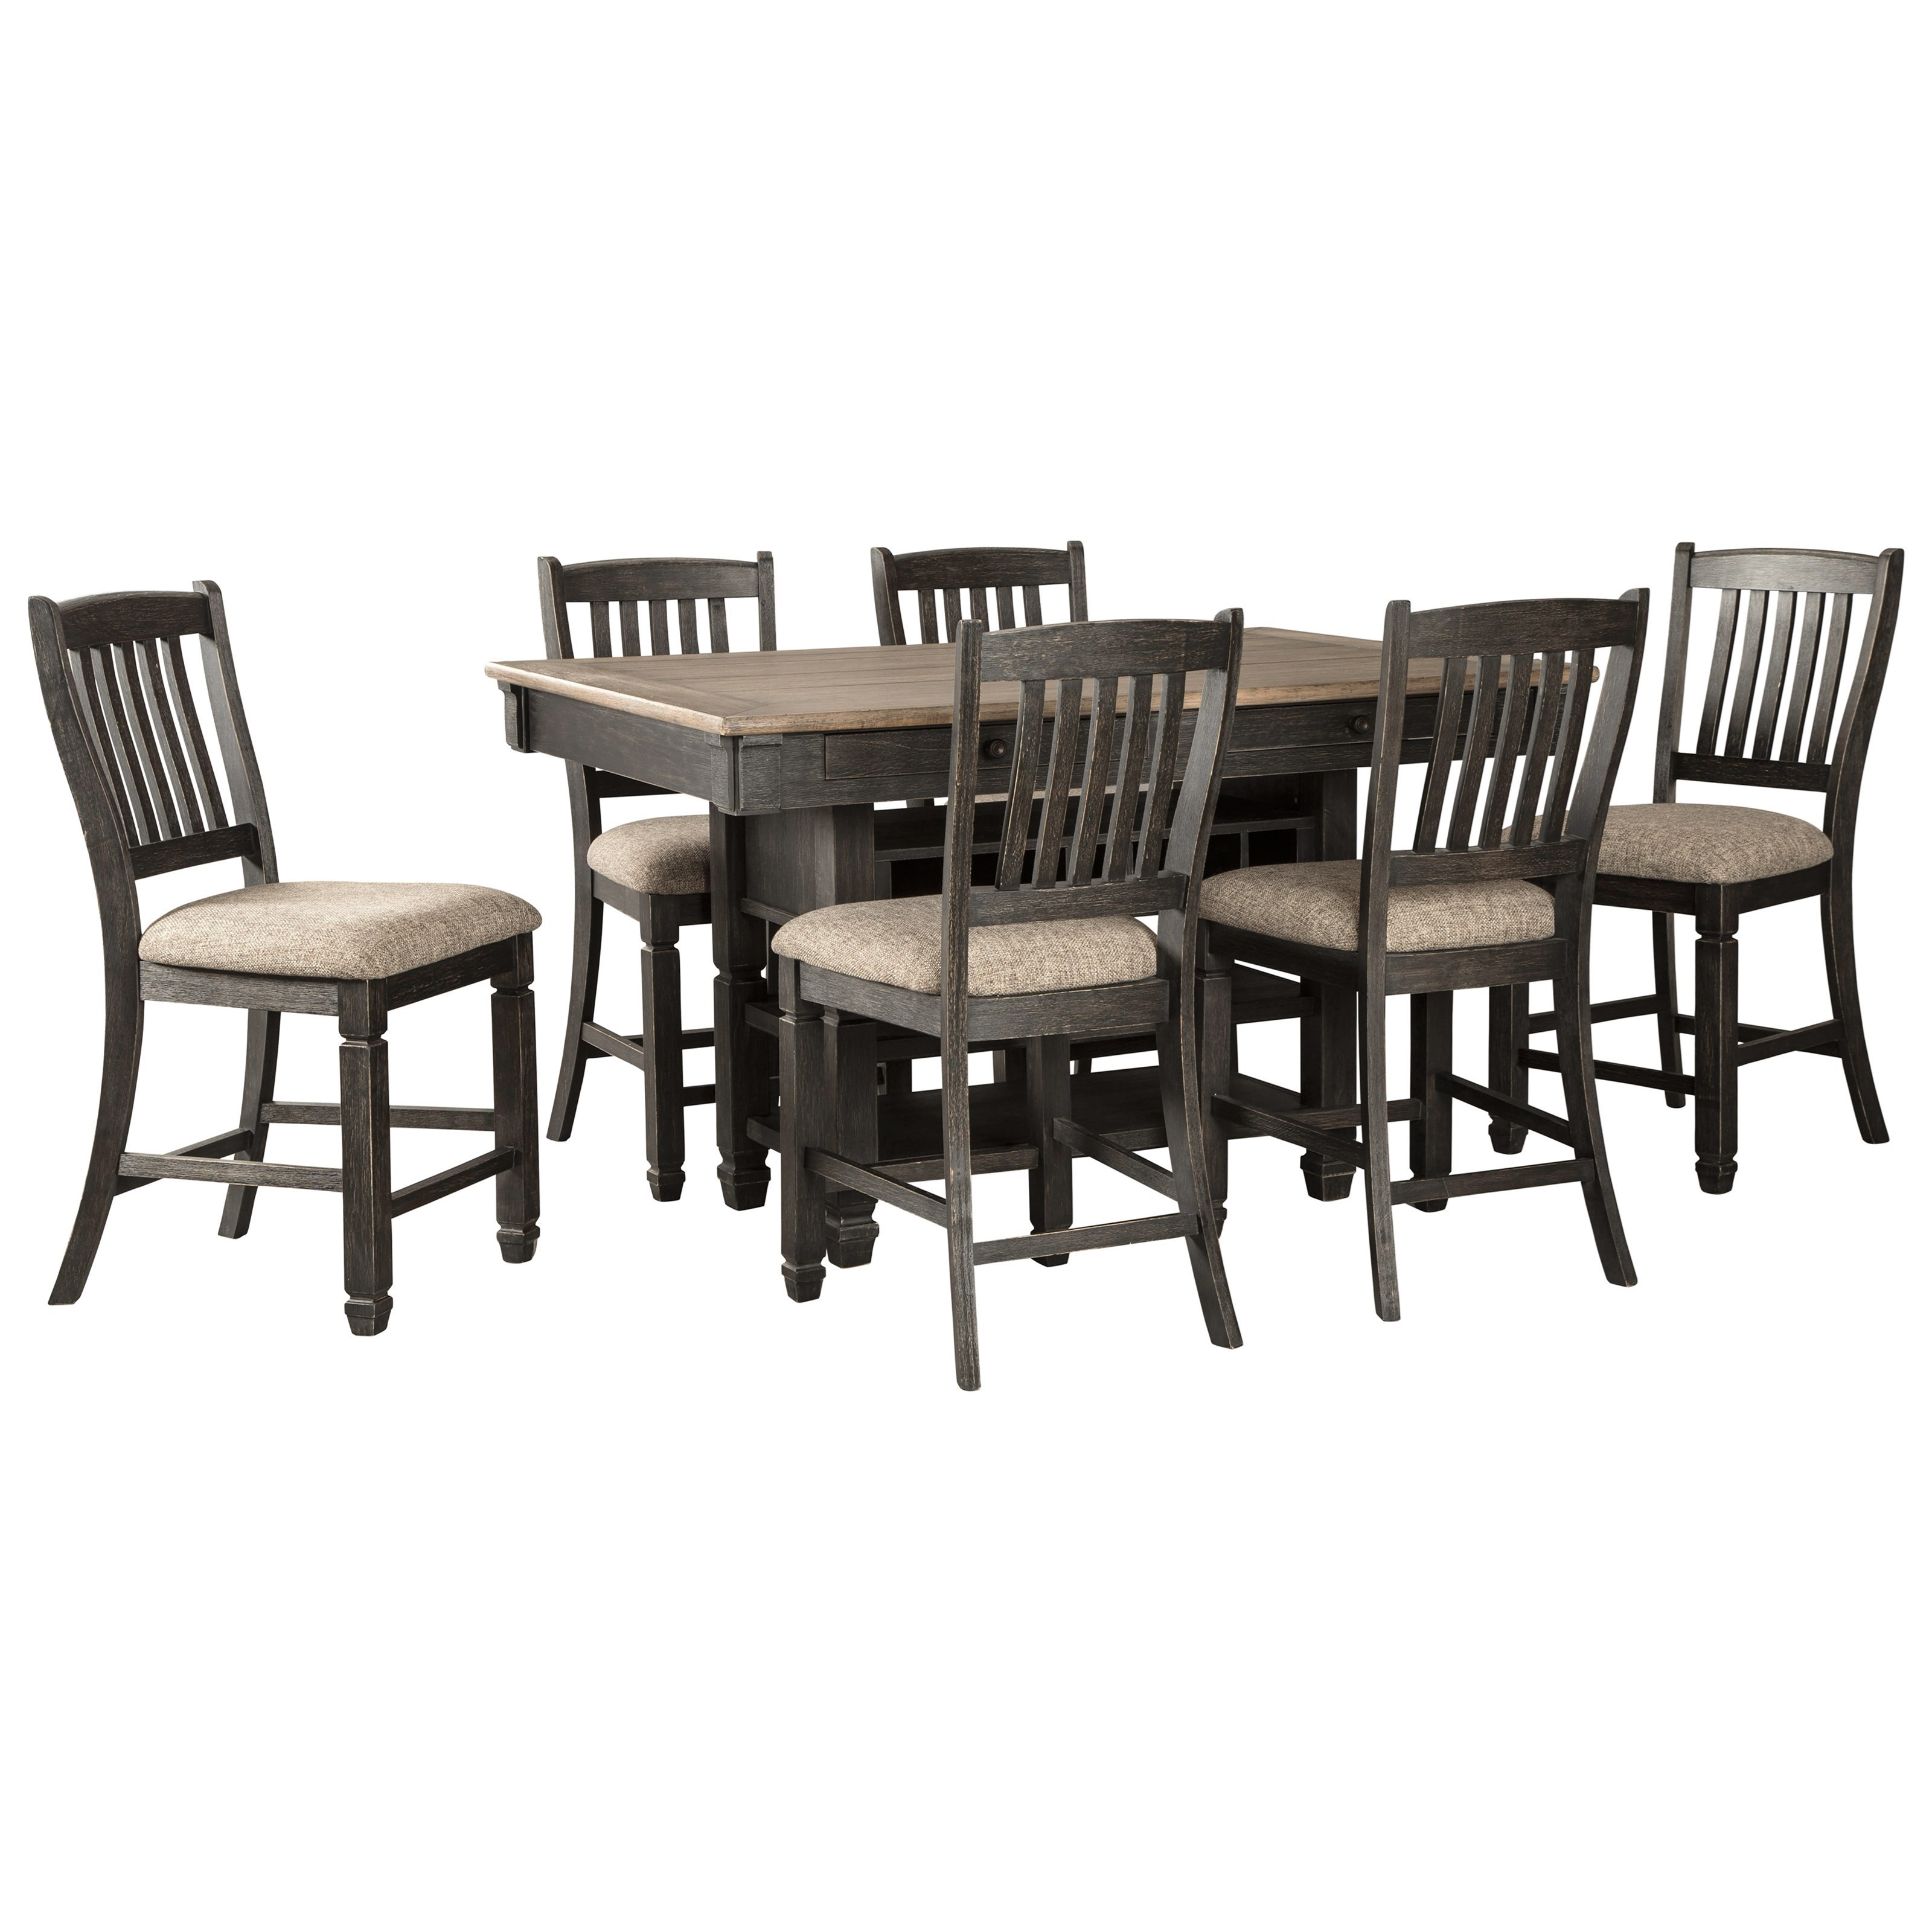 Tyler Creek 7-Piece Counter Table and Stool Set by Signature Design by Ashley at Beck's Furniture